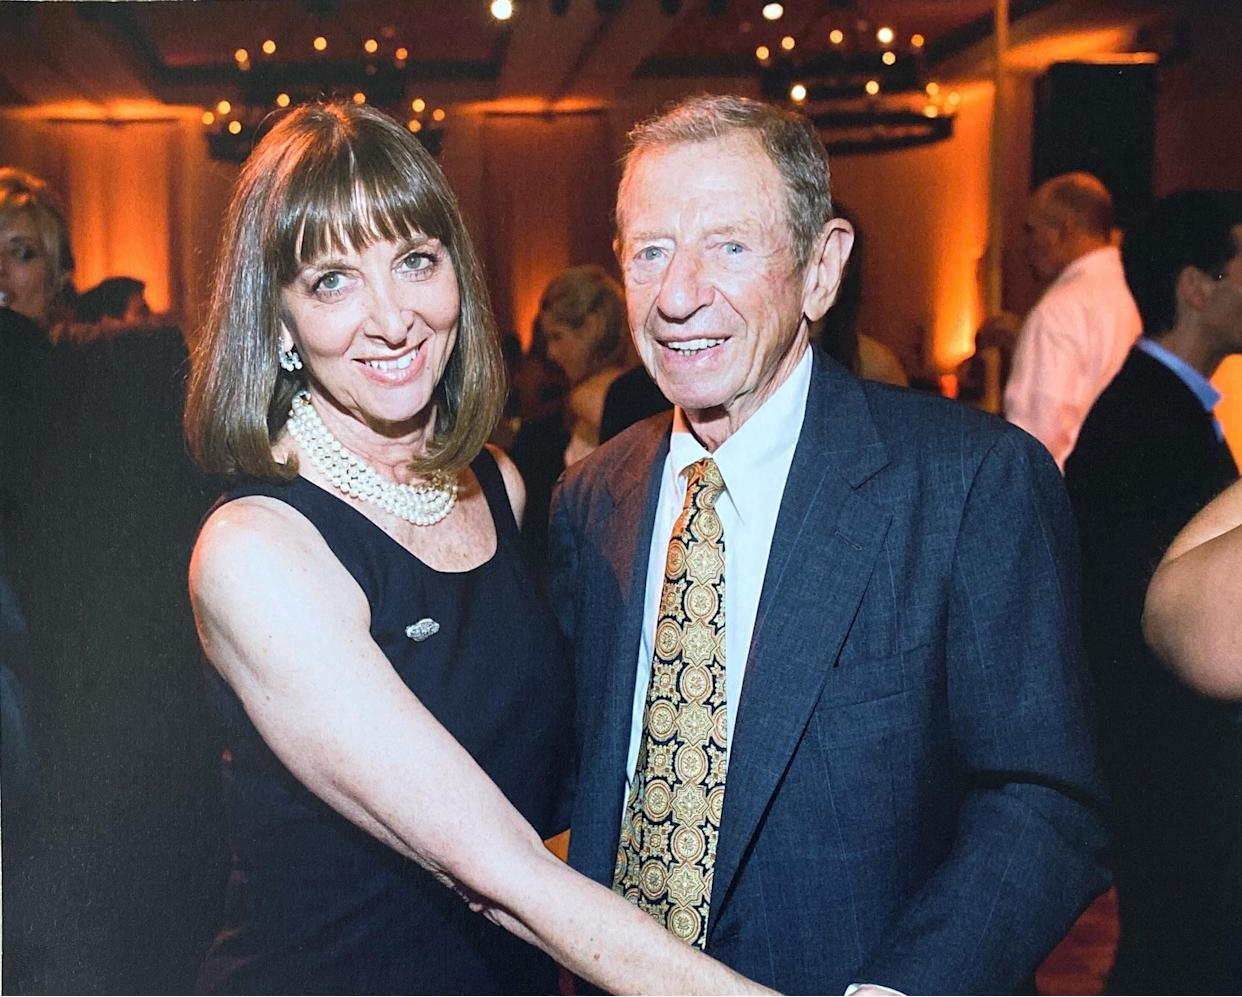 The author and her husband. (Photo: Courtesy of Janet Albaugh)